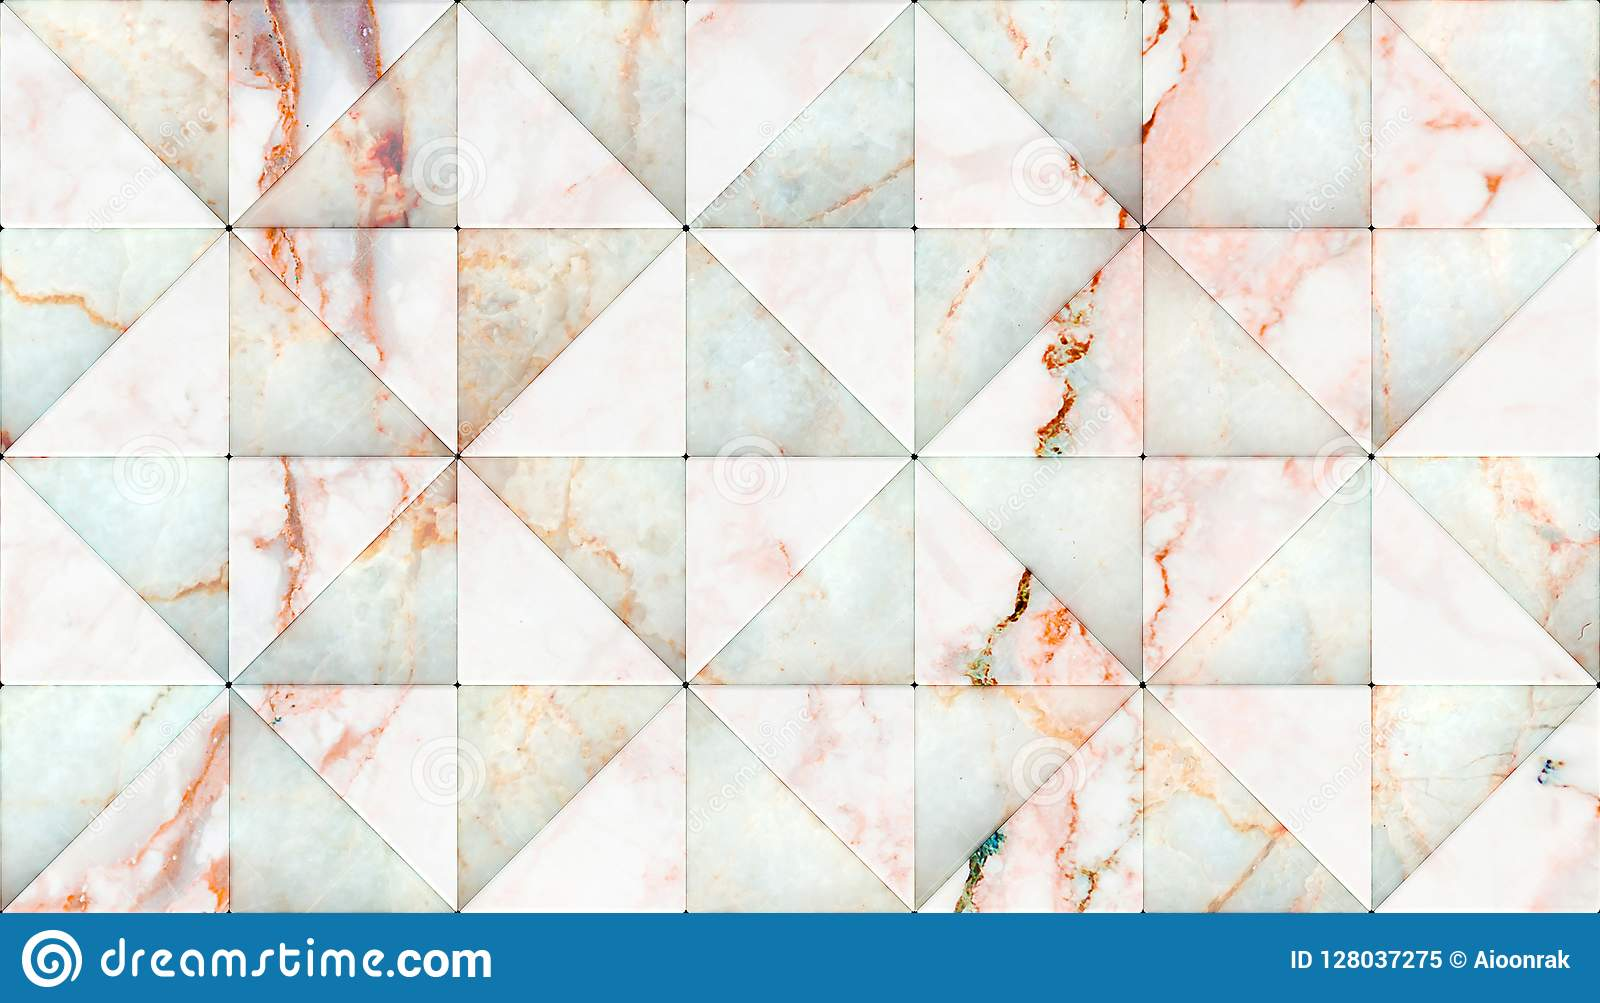 3D Rendering Of Triangle Shape Panels, Material White ...